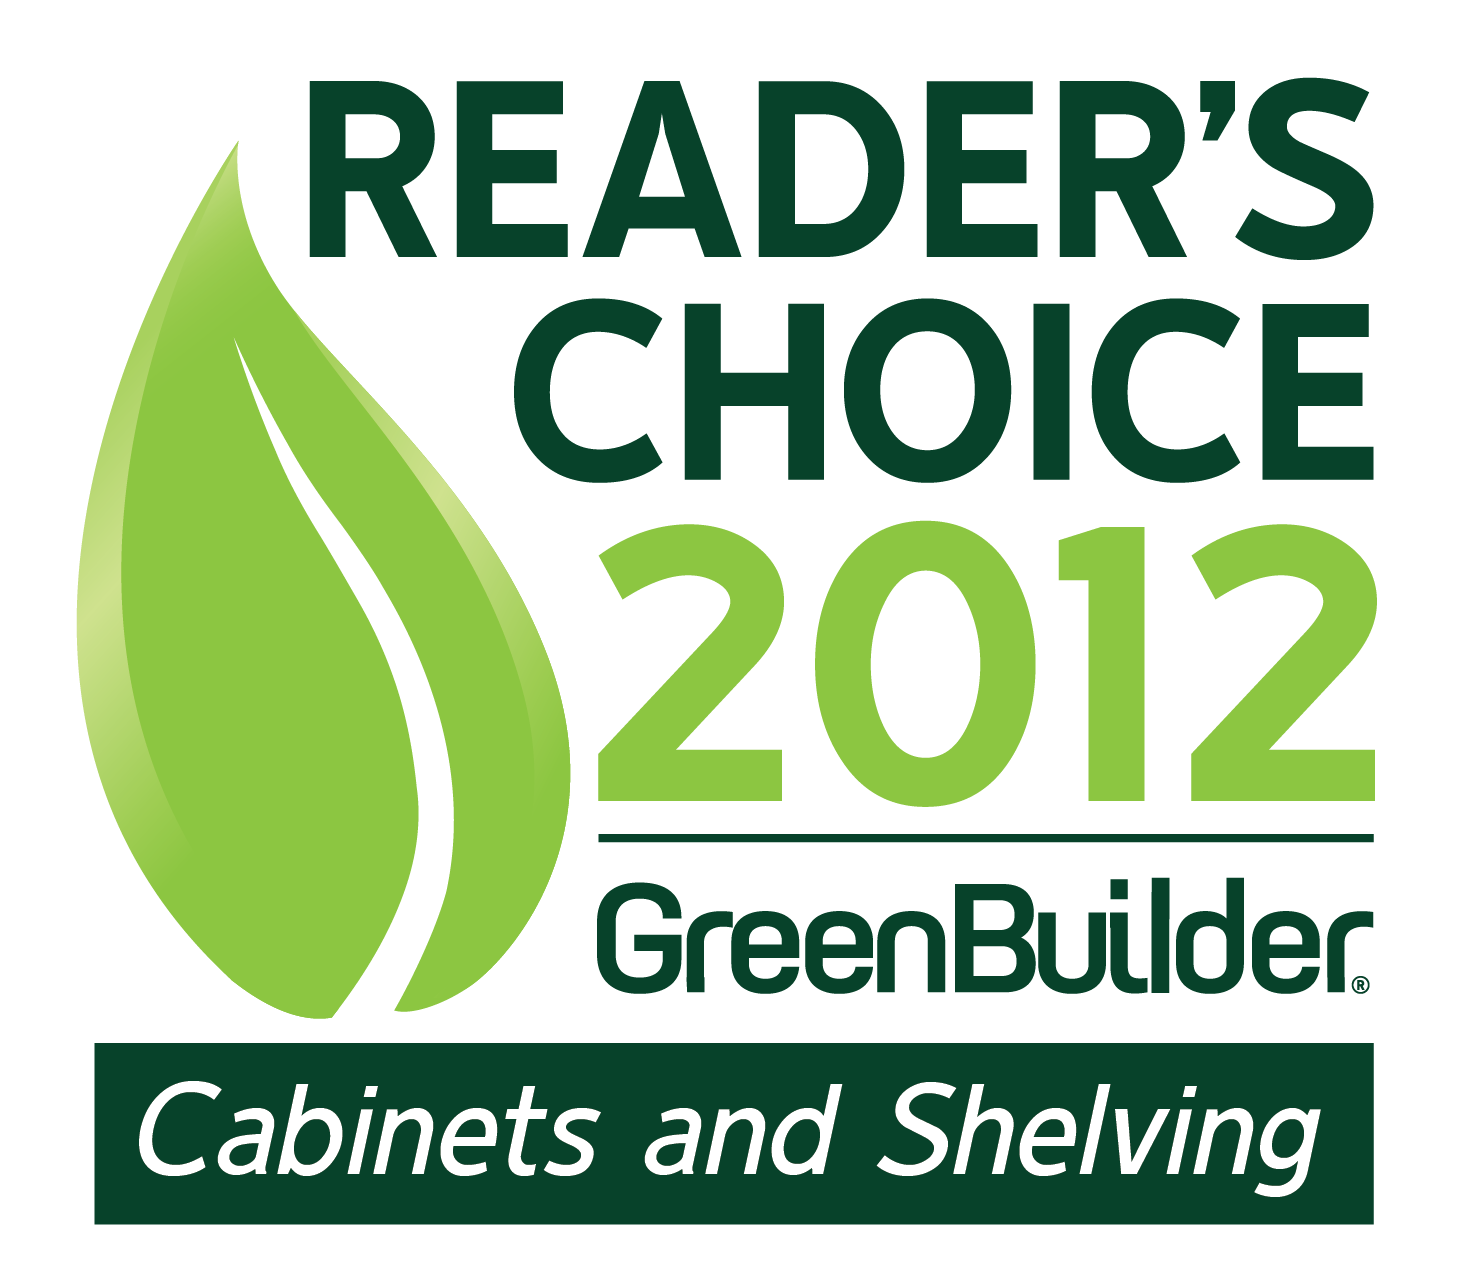 Green Builder® 2011 Readers' Choice Brand Study Names KraftMaid® and Merillat® the Greenest Cabinetry Companies Based on Reader Survey Results